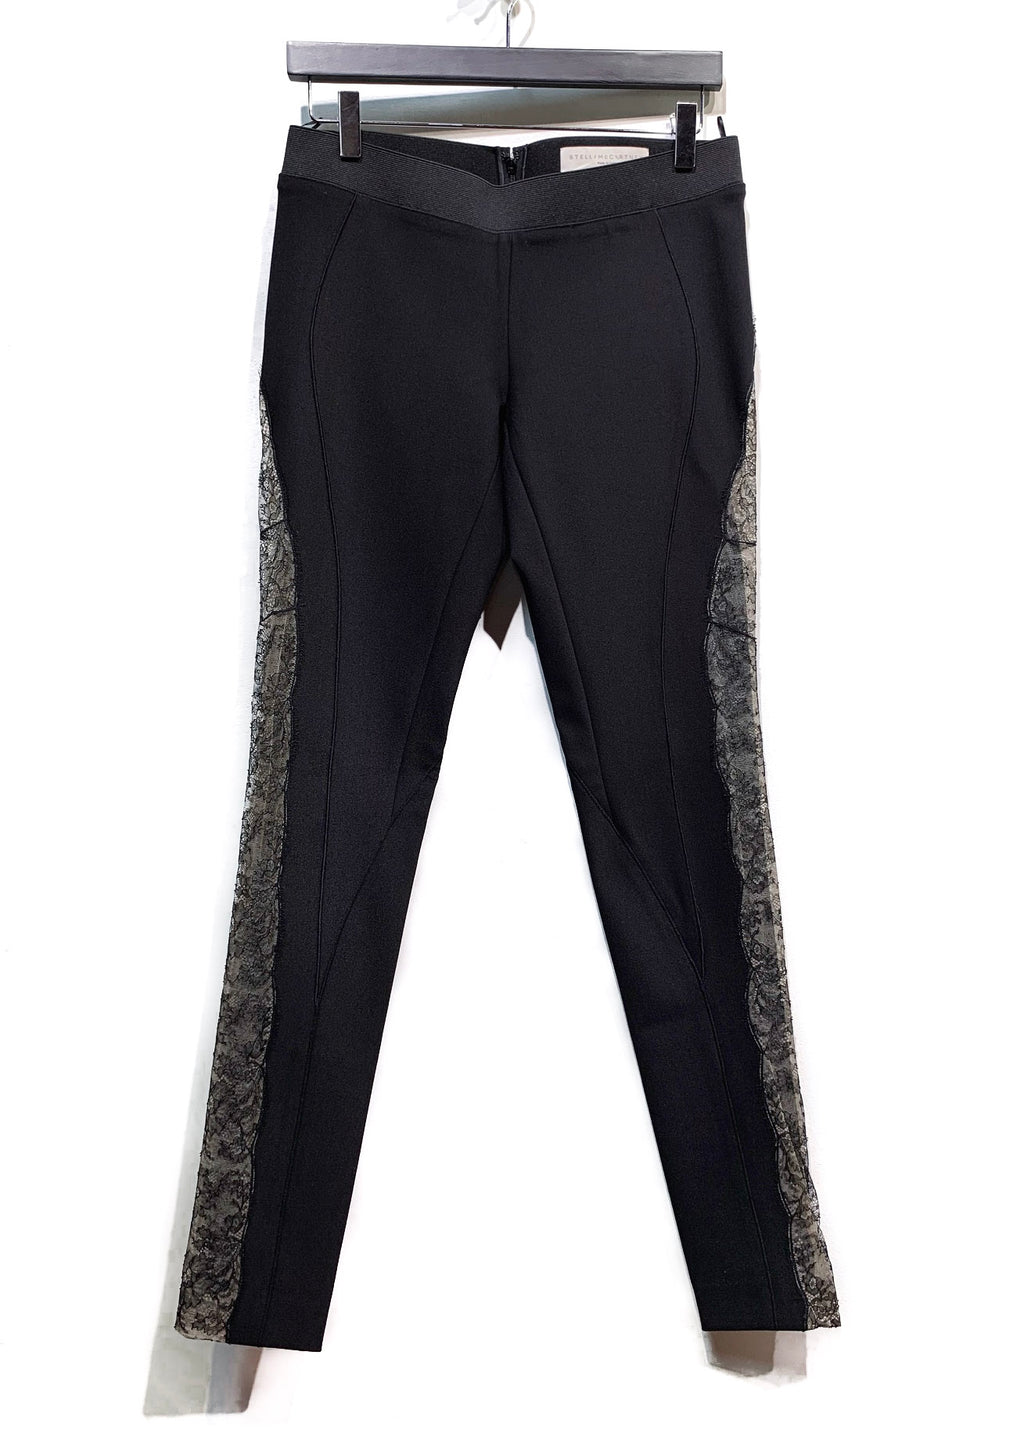 Stella McCartney Black Lace Insert Leggings Trousers